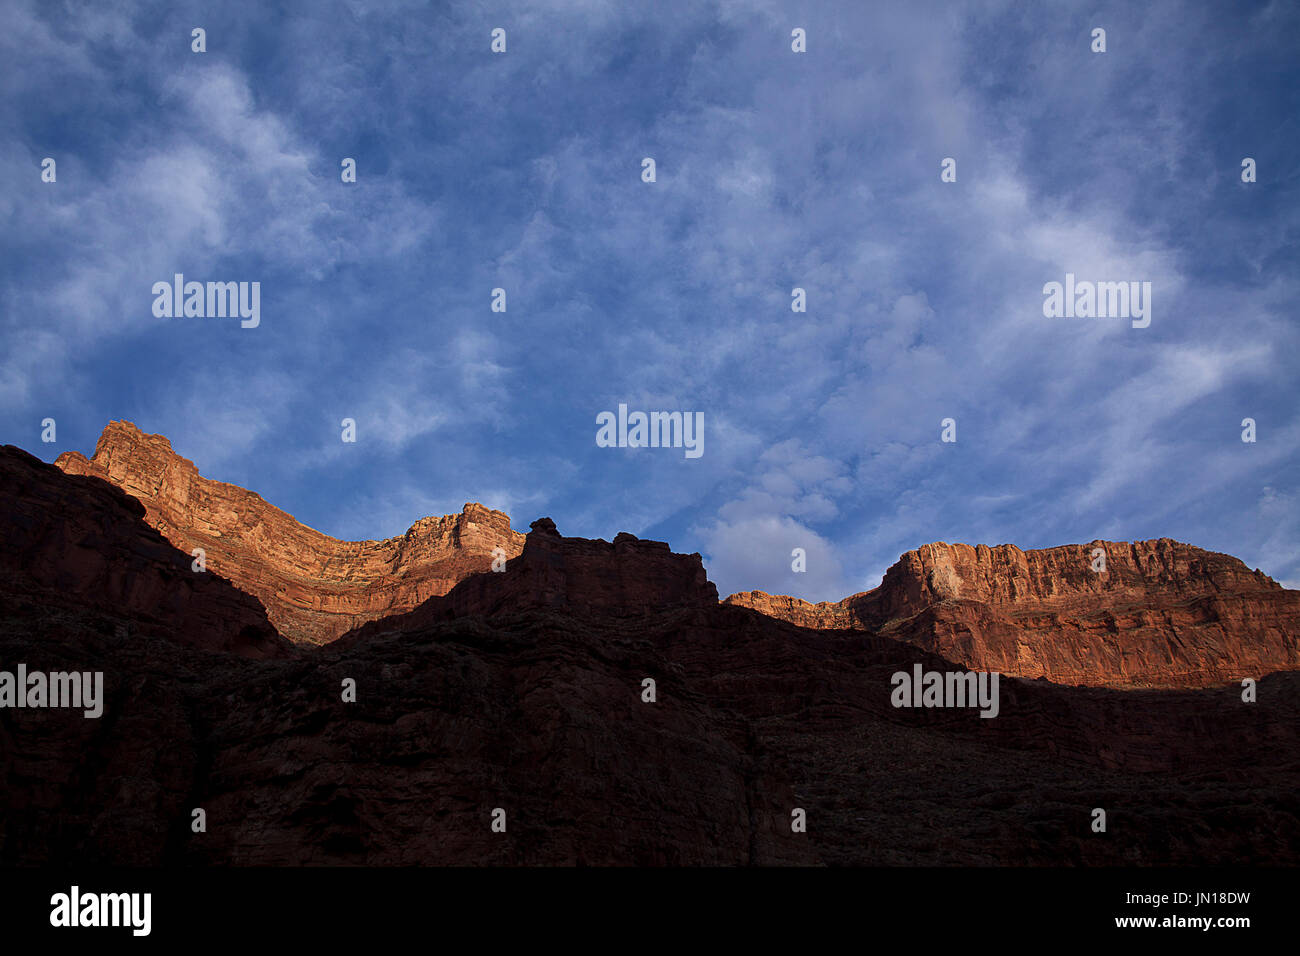 Flagstaff, Arizona, USA. 25th July, 2017. July 24, 2017.The sun sets turning the high cliffs of Toroweap and Kaibab Limestone an even redder shade. A group of river runners set off from Lee's Ferry Arizona on a 221 mile decent of the Colorado River thru the geological time exposed thru erosion in Grand Canyon National Park to Diamond Creek on the Hualapi Native American Reservation on the western edge of the park. Credit: Ralph Lauer/ZUMA Wire/Alamy Live News - Stock Image